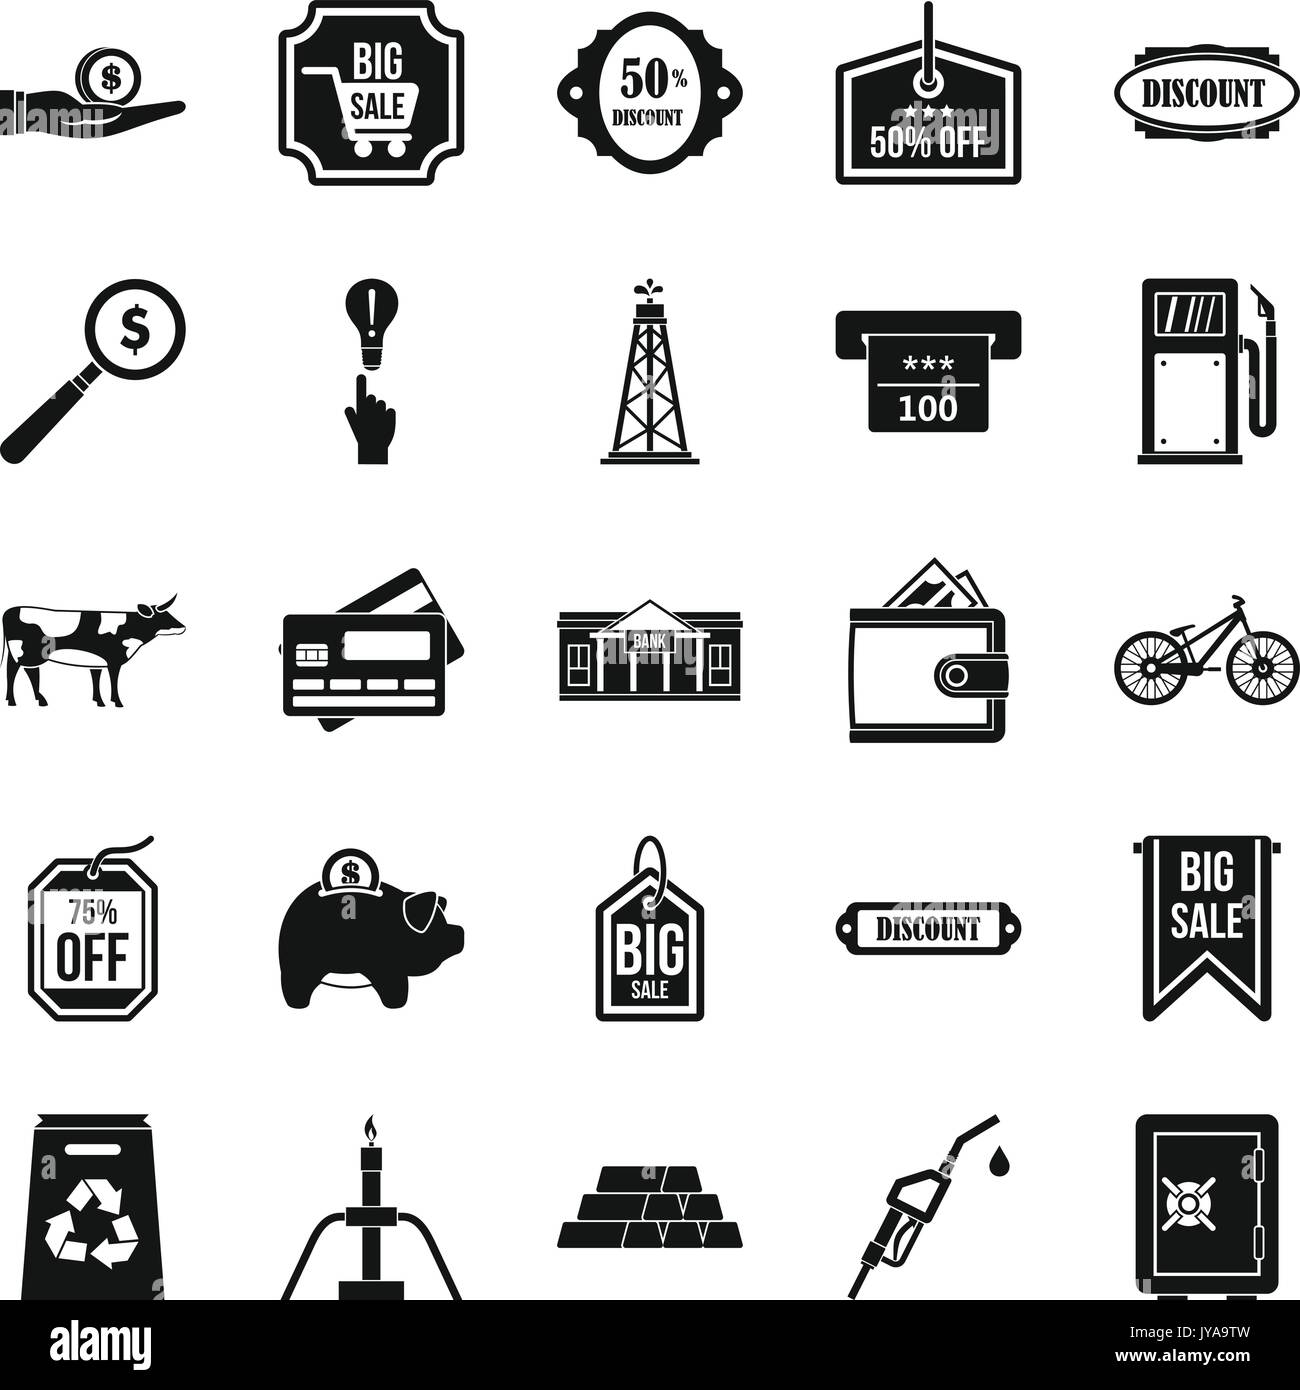 Prudence icons set, simple style - Stock Image